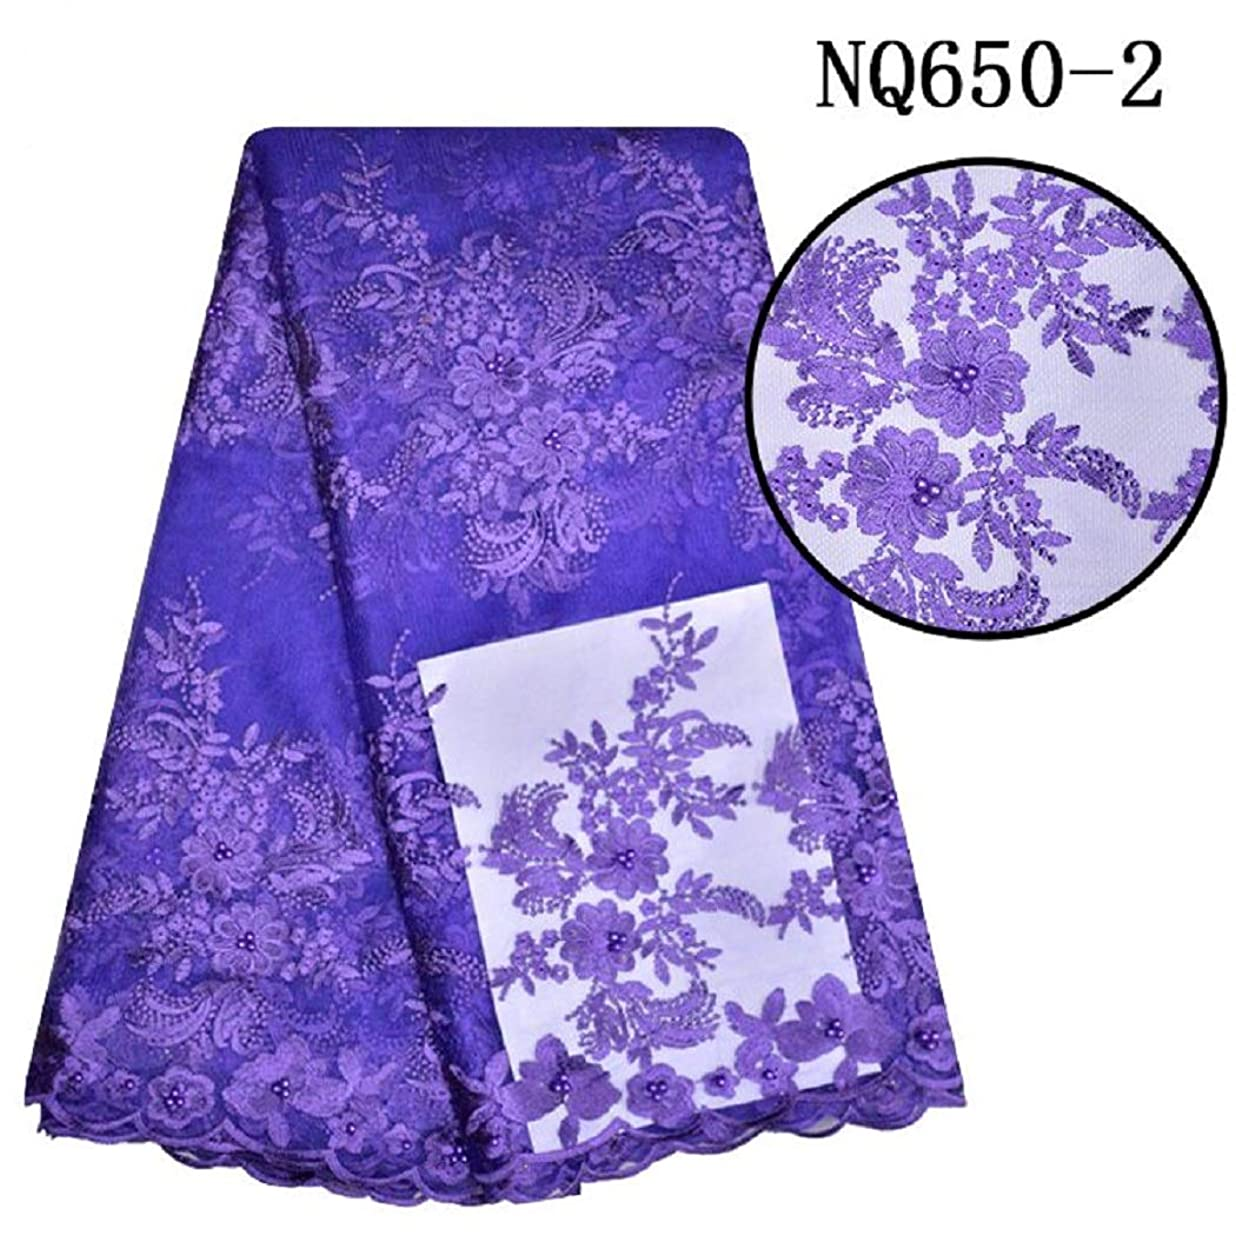 pgooodp African Lace Fabric 5 Yards French Net Nigeria Lace Embroidered Guipure Fabrics 010 (Purple) fdtssvbf4